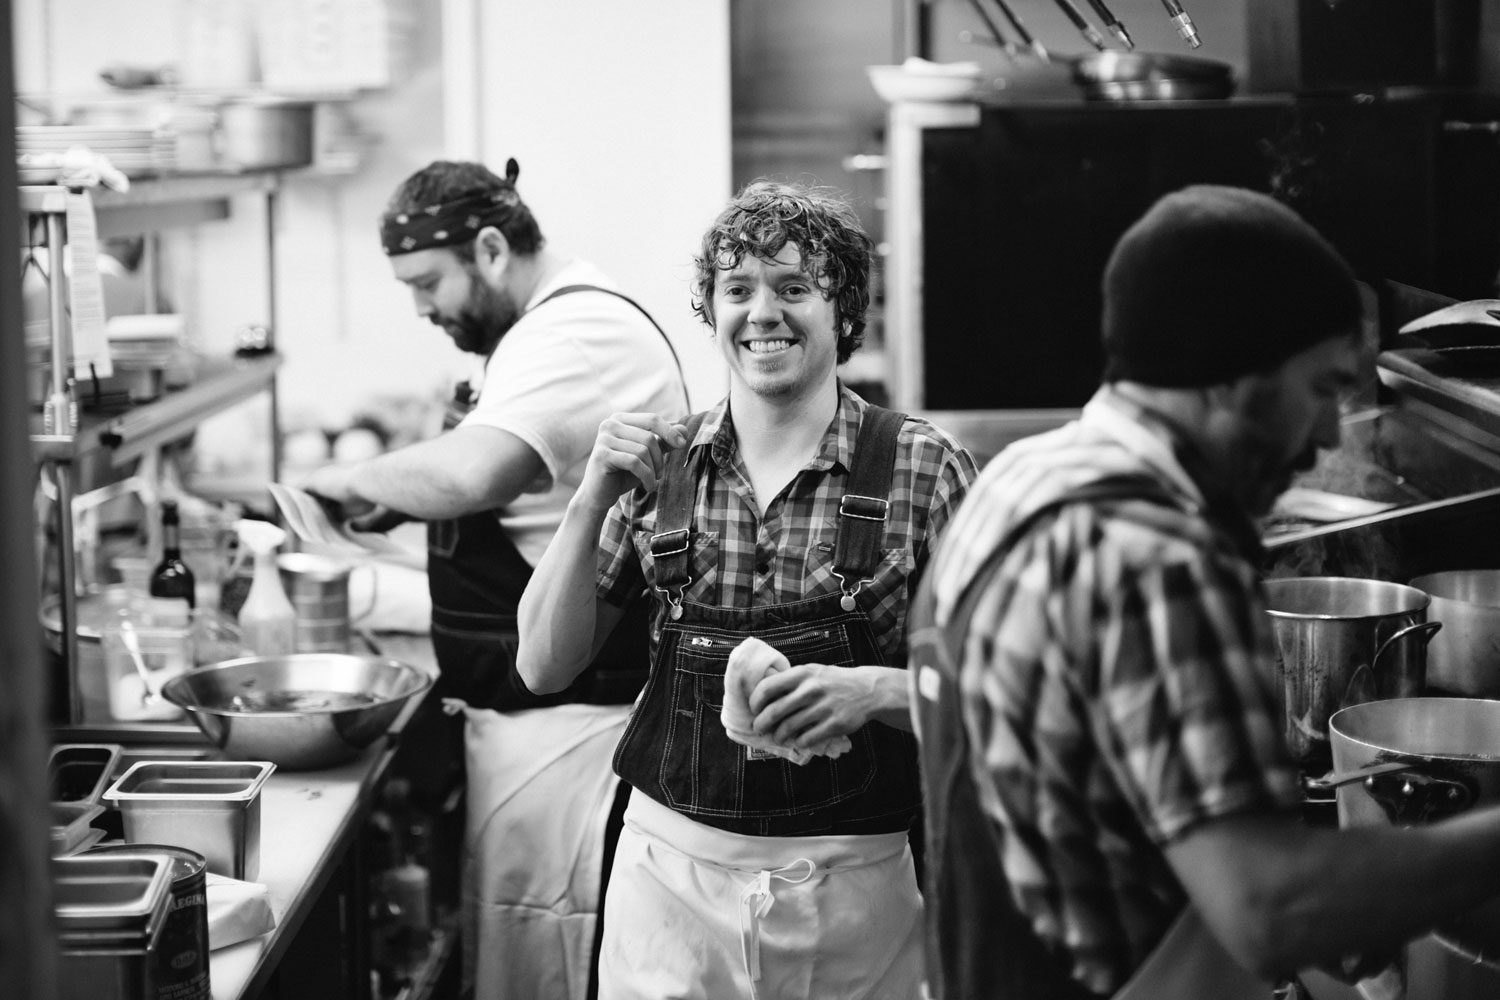 Kristin Teig Photography | Behind the scenes in the kitchen